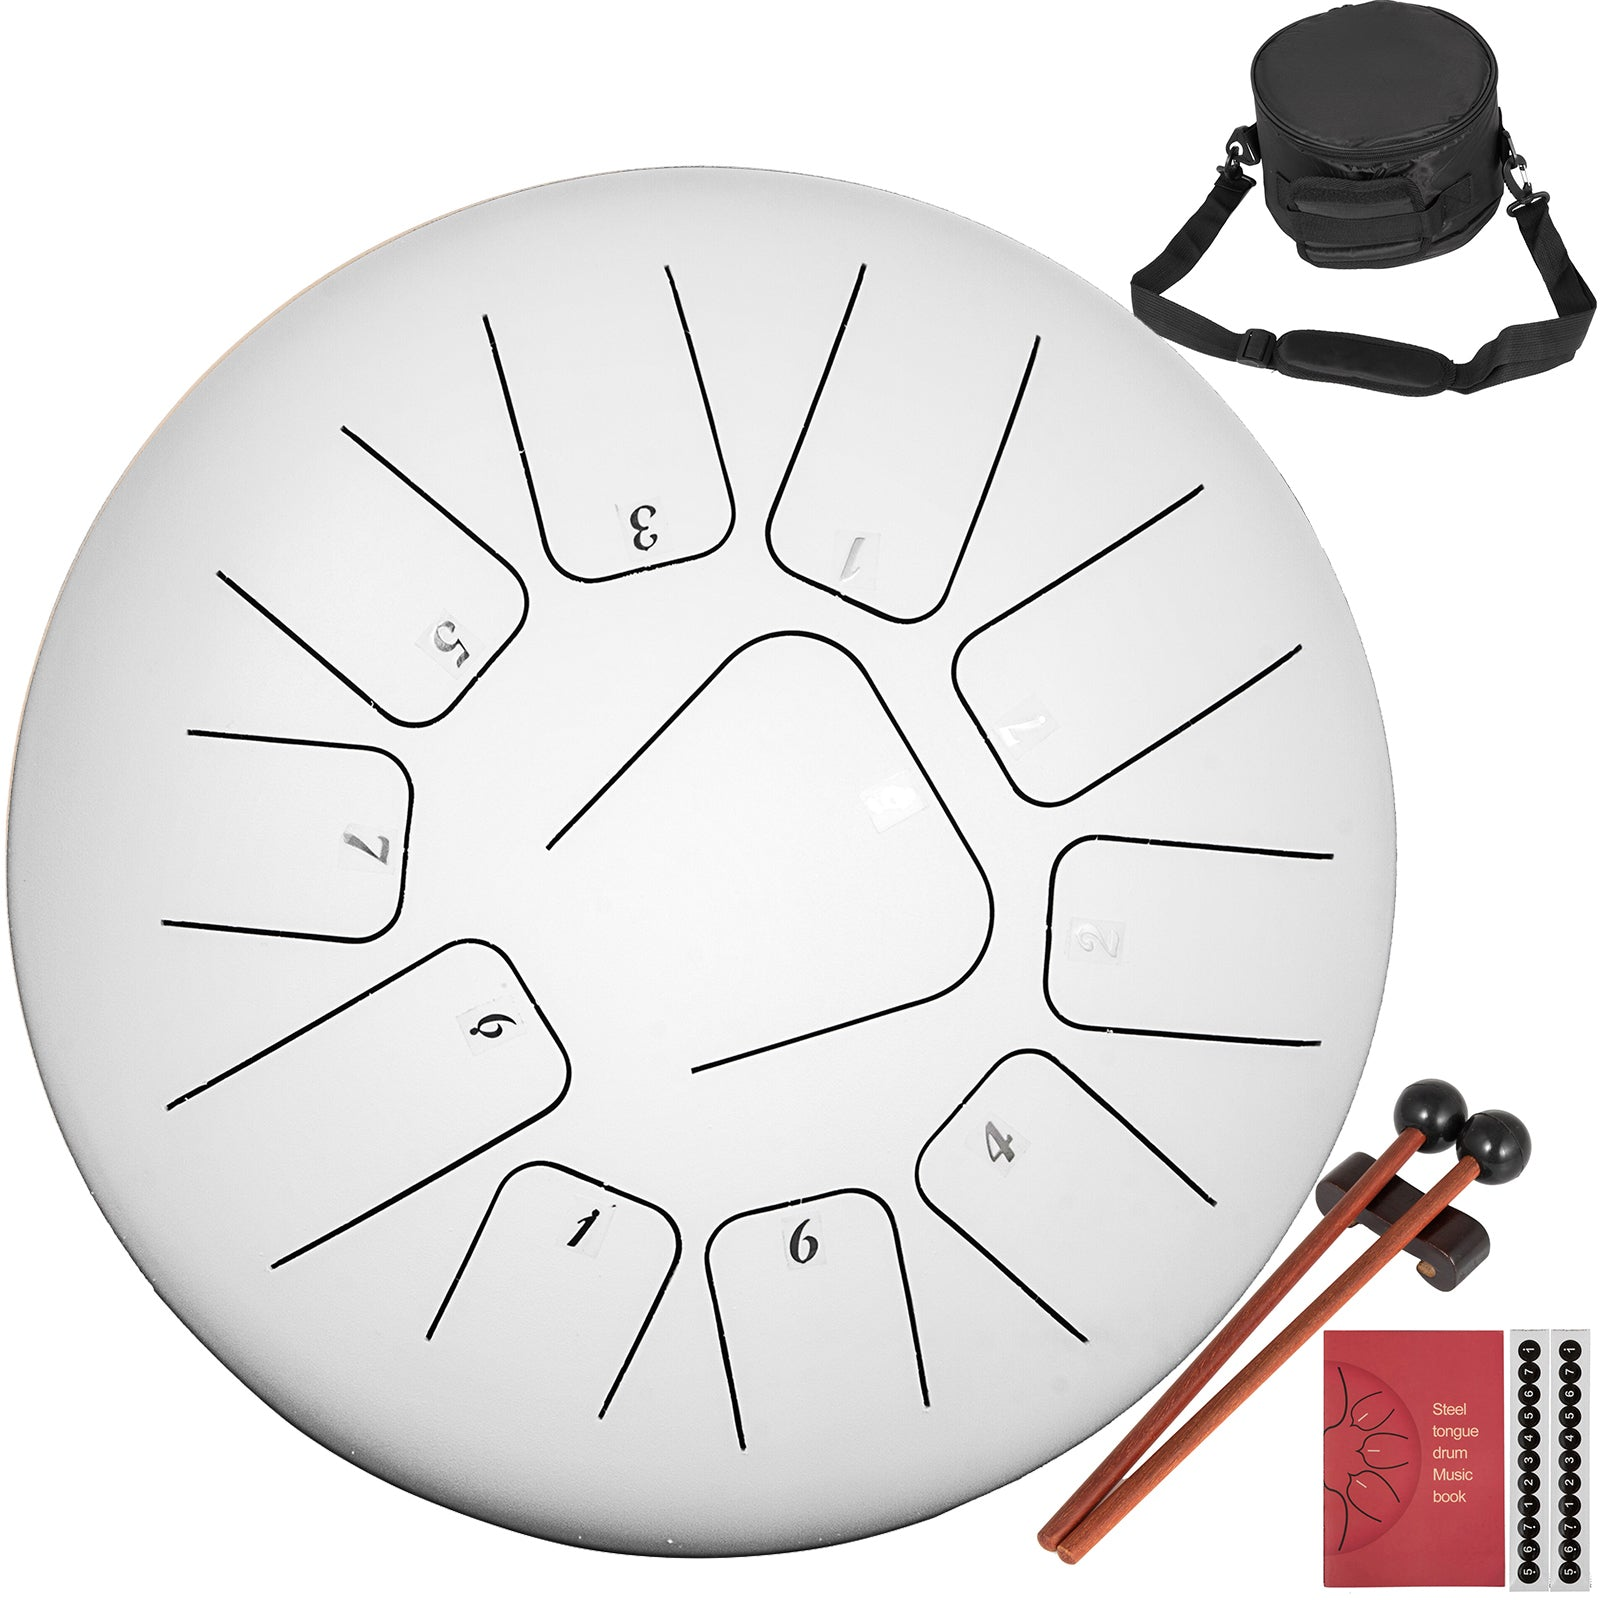 Steel Tongue Drum 11 Notes 10 Inches Percussion Instrument + Bag Book Mallets